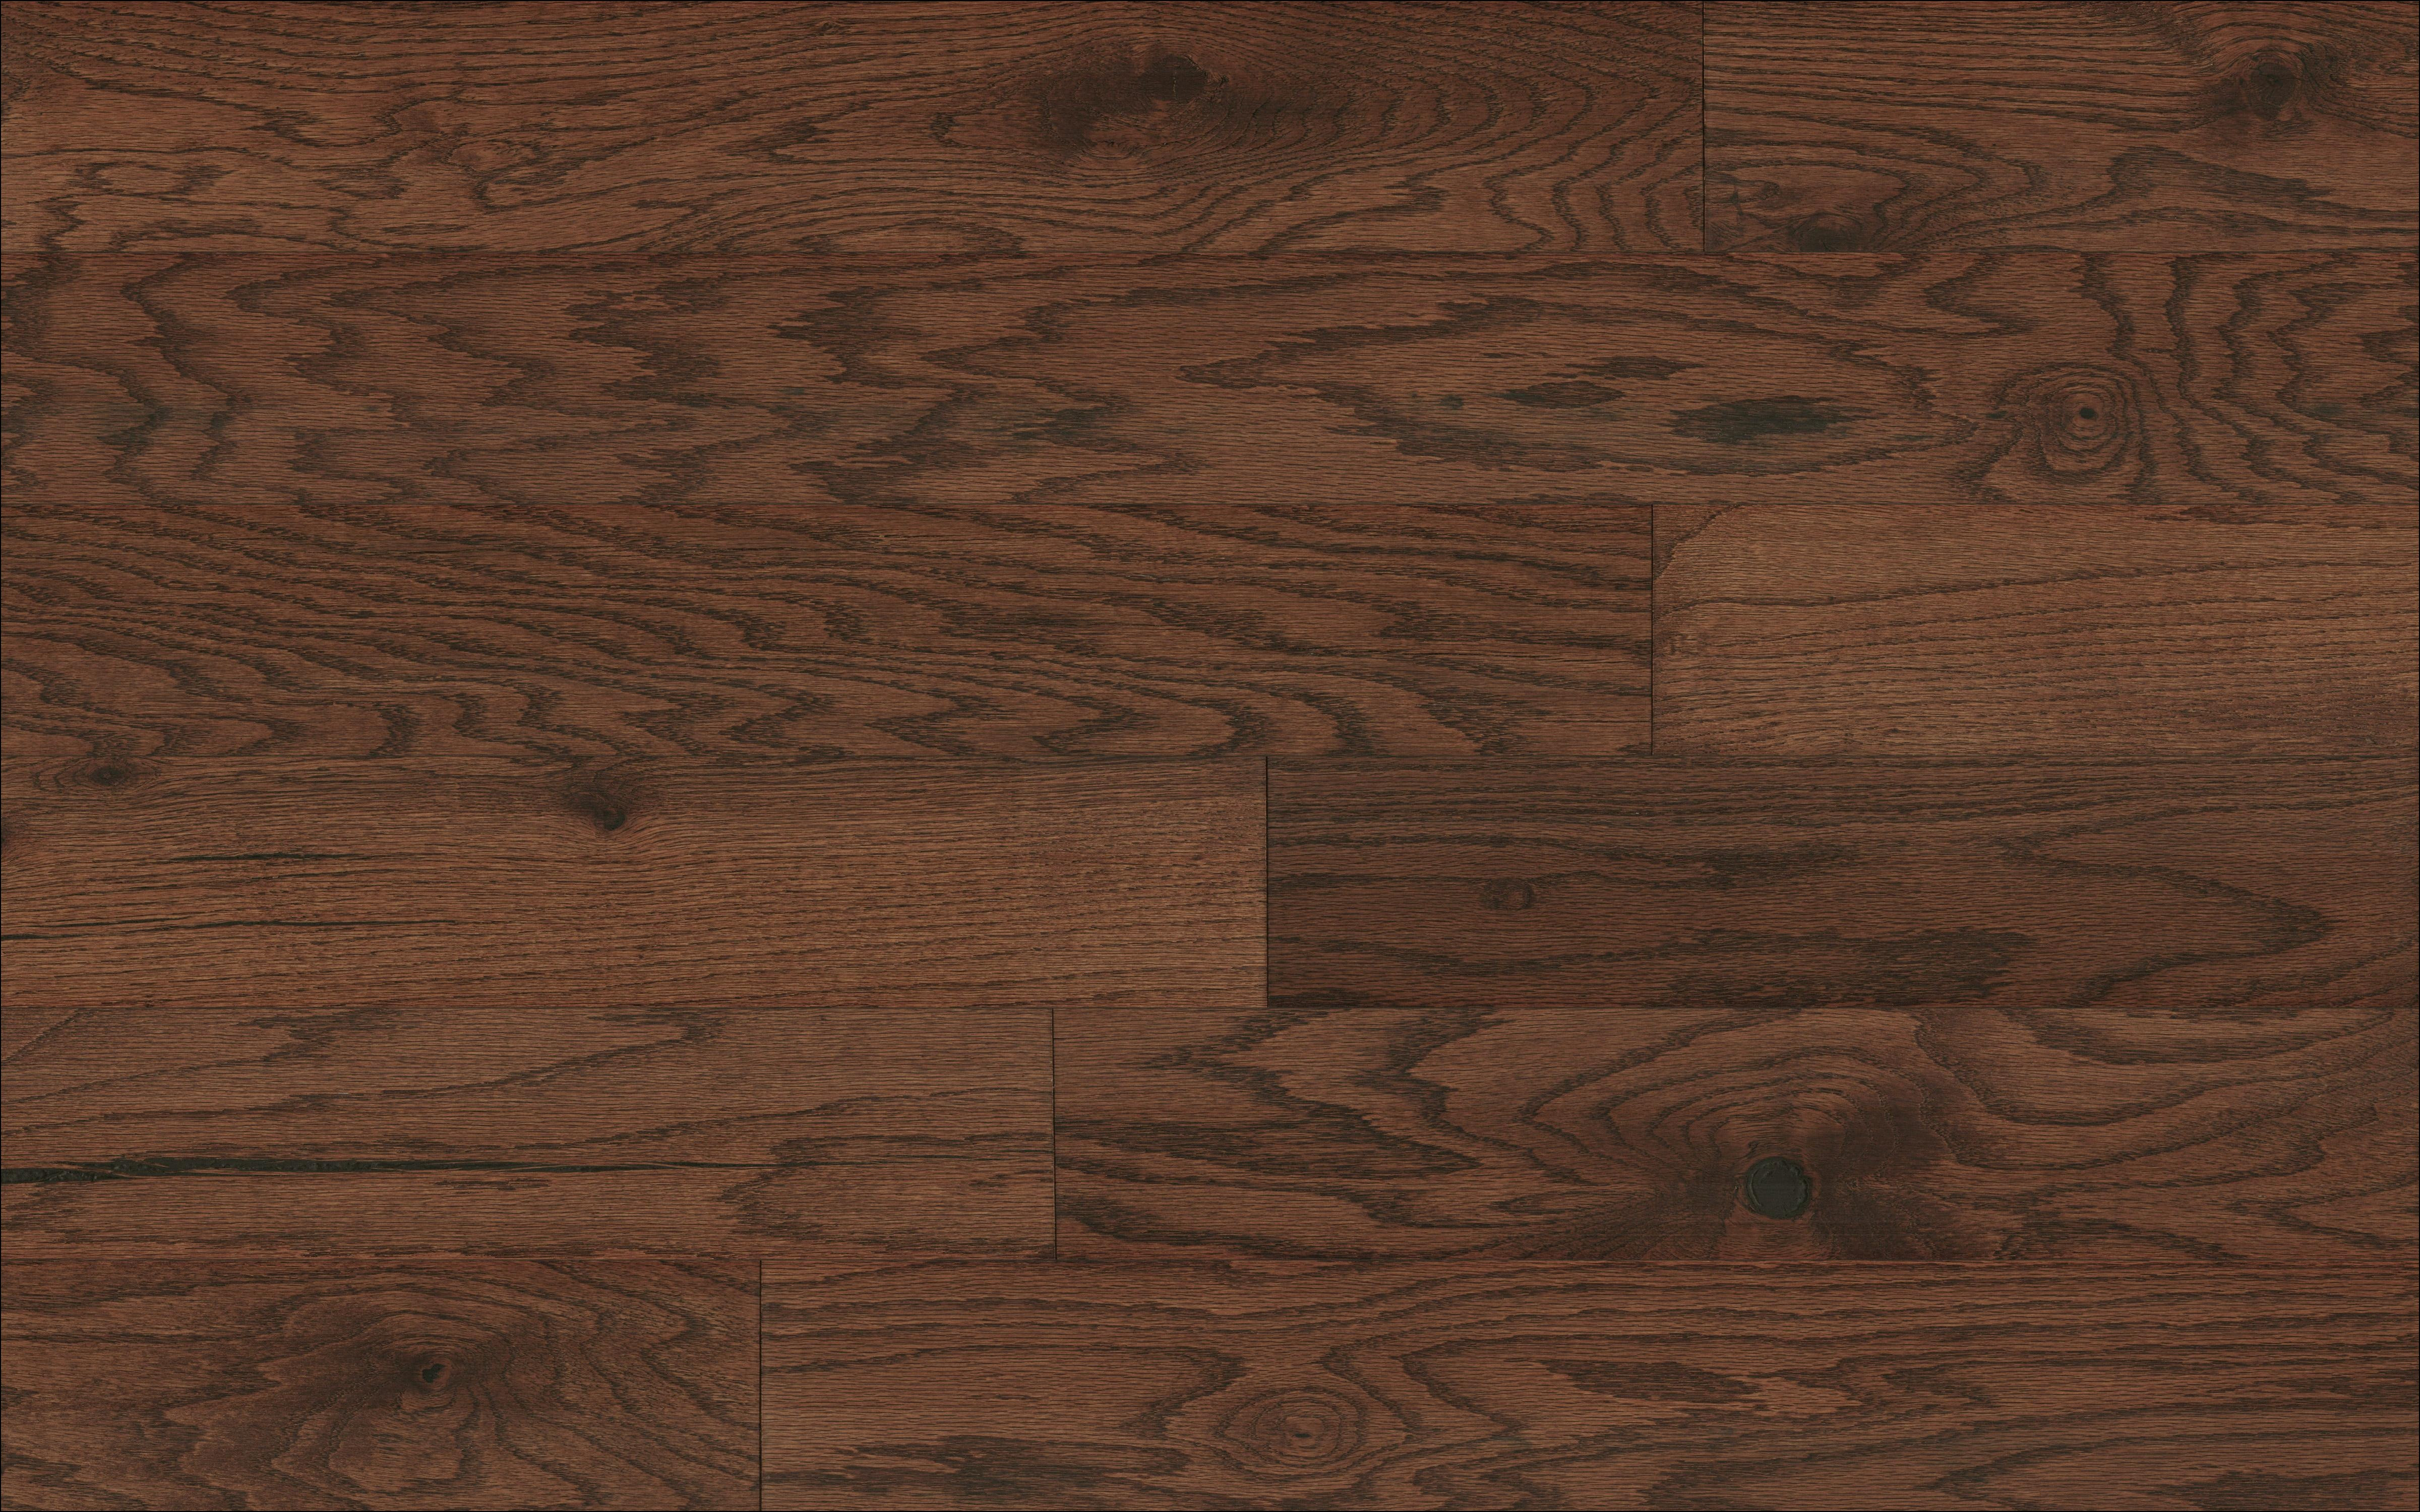 buy hickory hardwood flooring of best place flooring ideas with regard to best place to buy engineered hardwood flooring collection mullican devonshire oak saddle 5 engineered hardwood